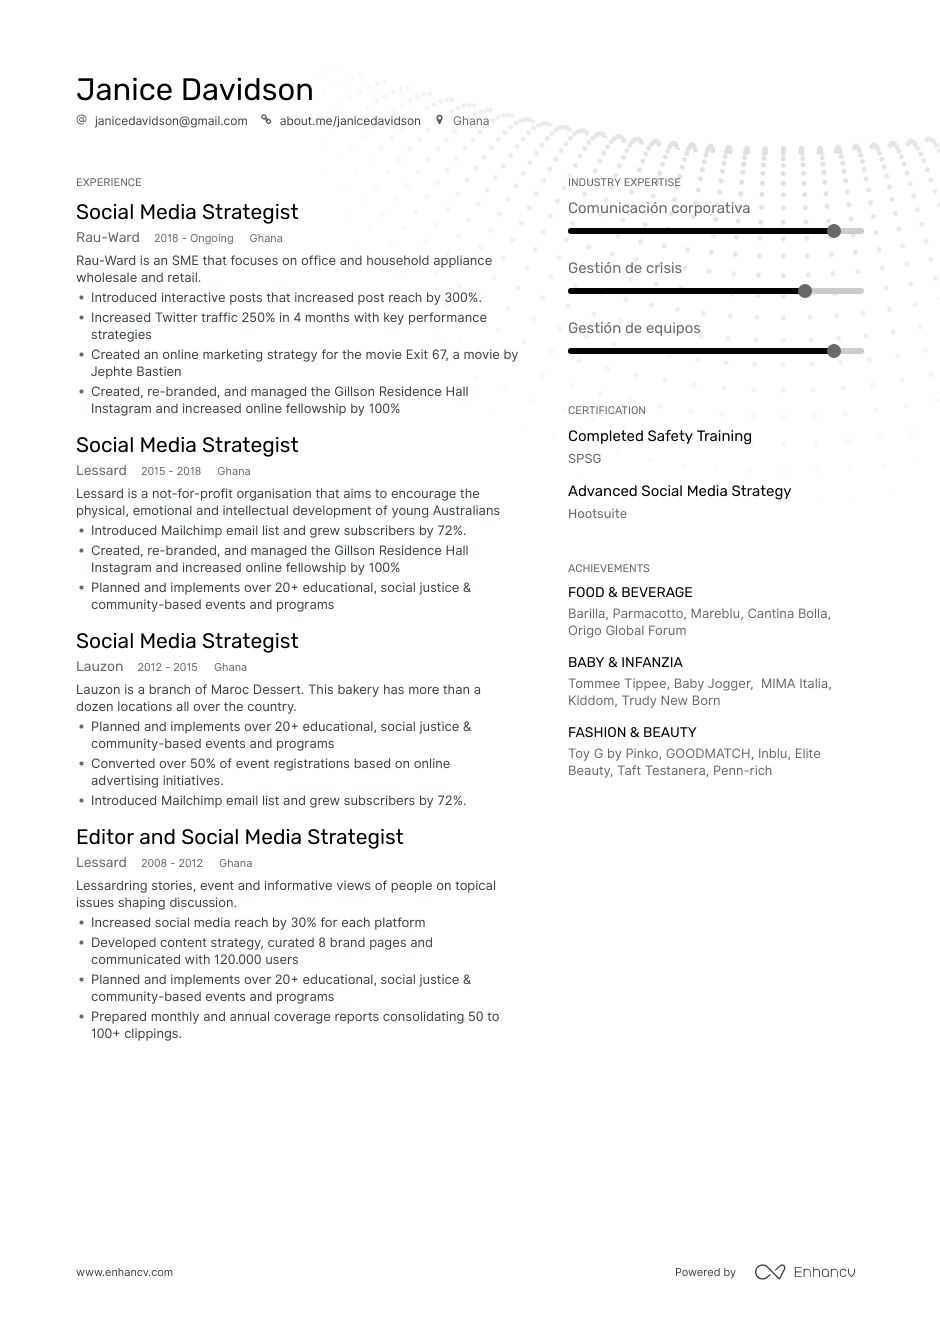 top social media strategist resume examples samples for enhancv fabricator job Resume Social Media Strategist Resume